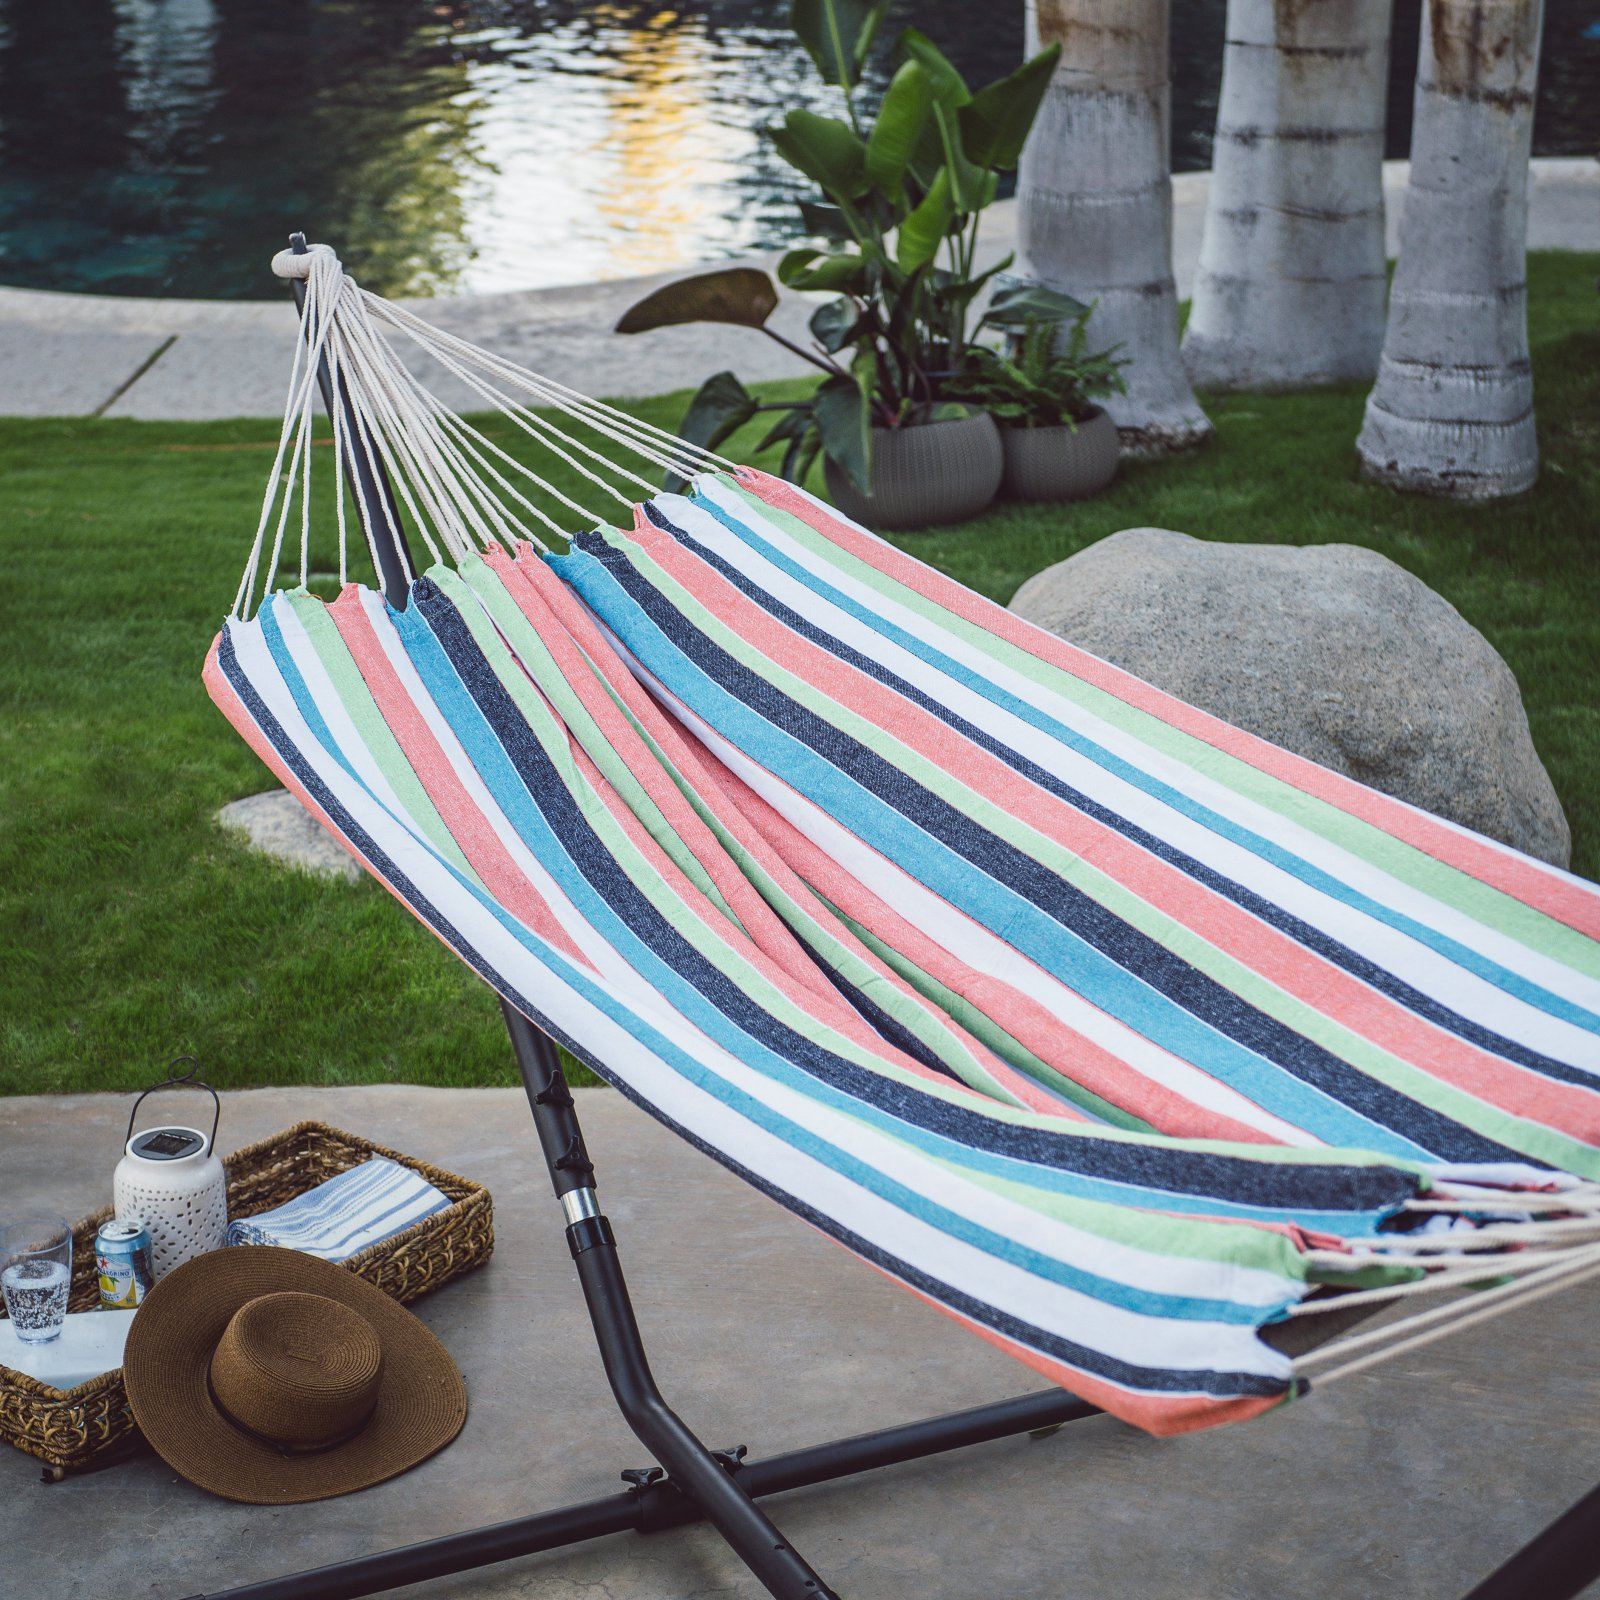 Island Bay Blue Green Stripe 9 ft. Single Hammock with Metal Stand by